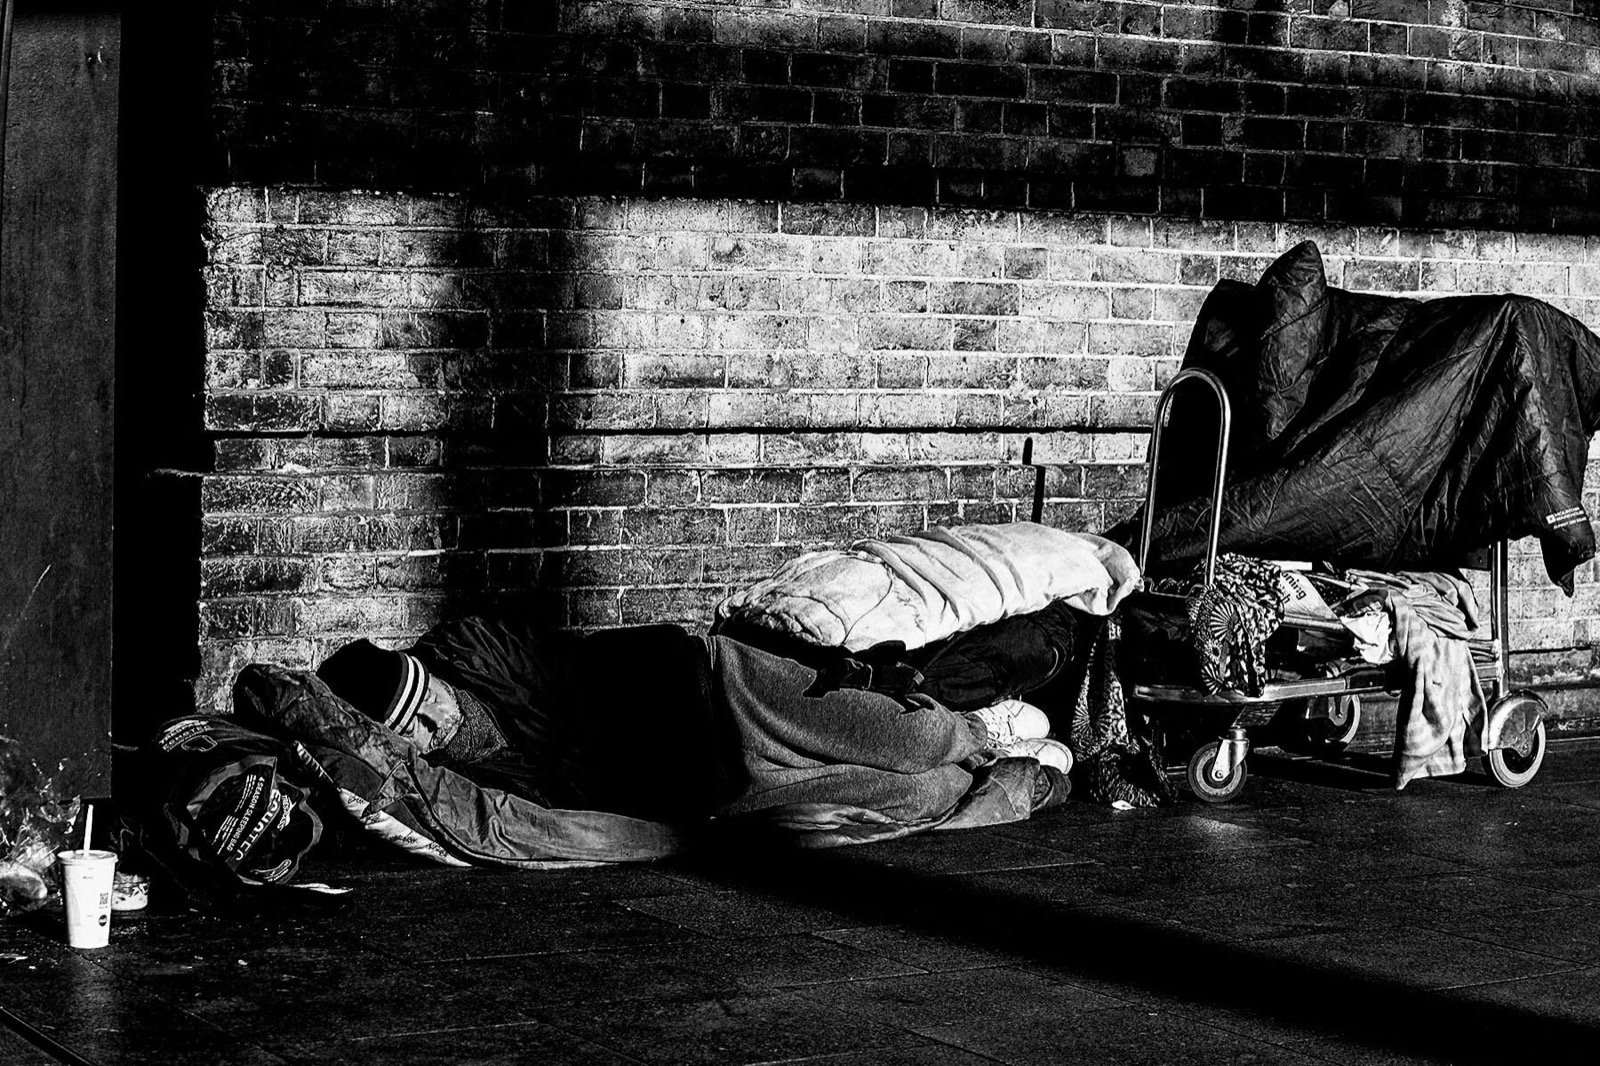 Sleeping on the streets Kings cross London during lockdown